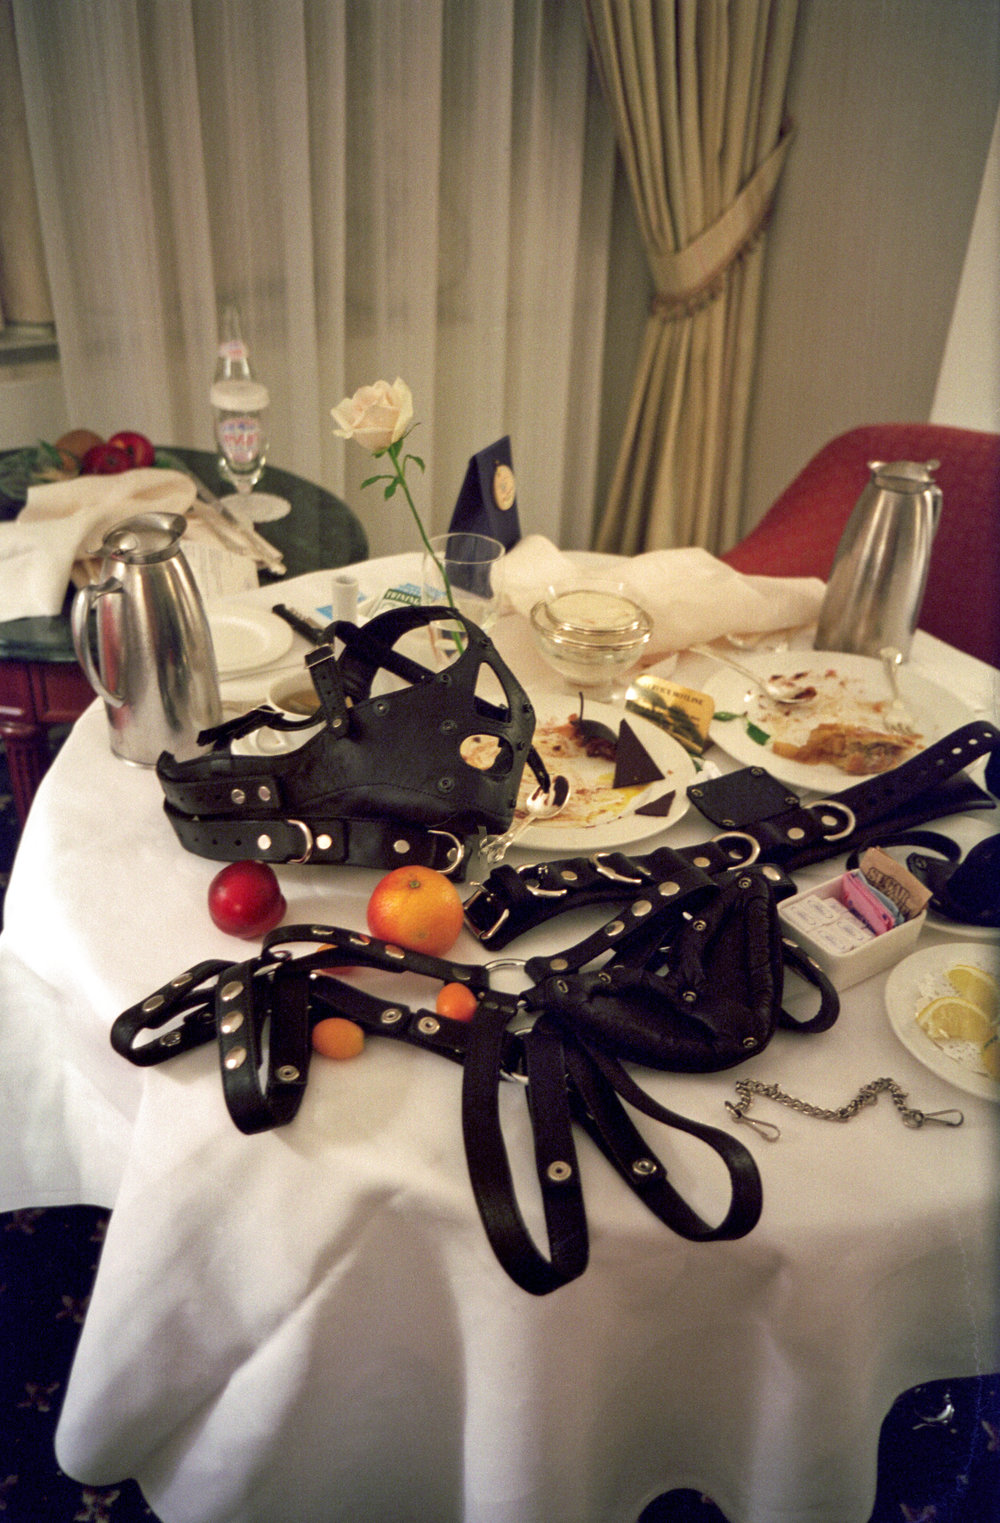 SLAVA MOGUTIN  (1974)  No Love Series: Dinner for 2 (Still life with the Bishop Mask) , 1999, impresión cromogénica de archivo, 76.2 x 50.8